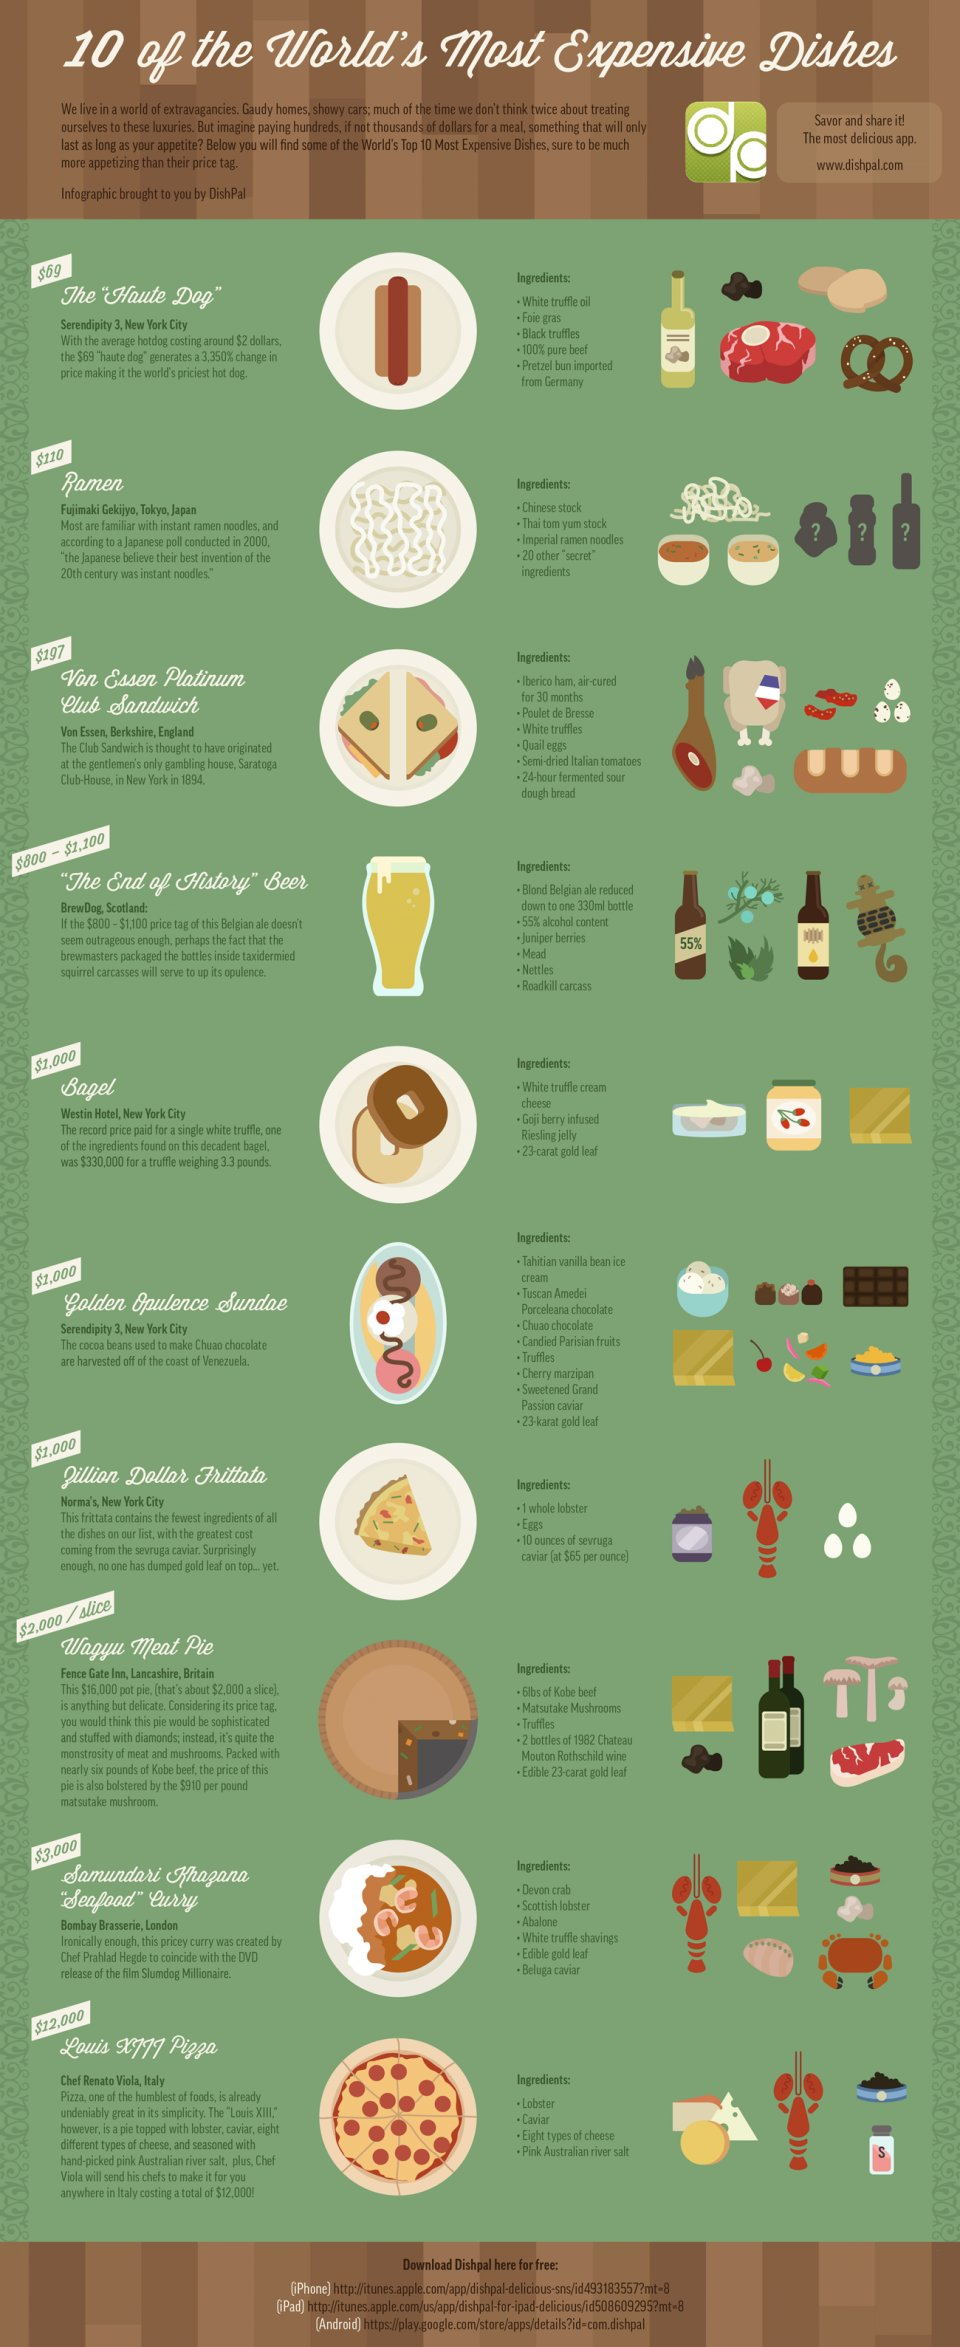 The Truth of Super Expensive Foods